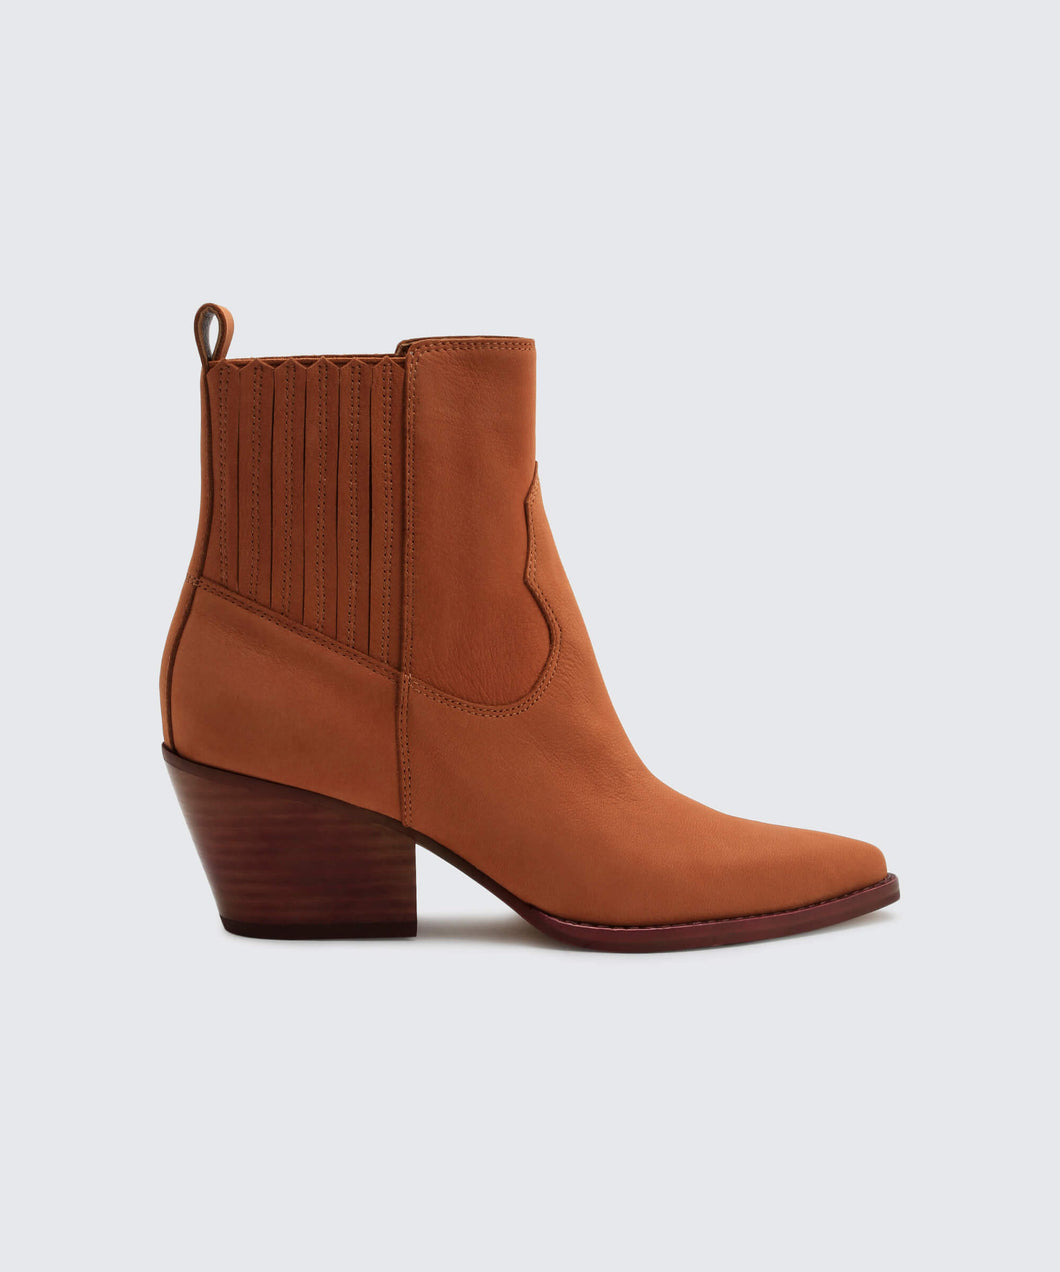 SUVI BOOTIES IN BROWN -   Dolce Vita